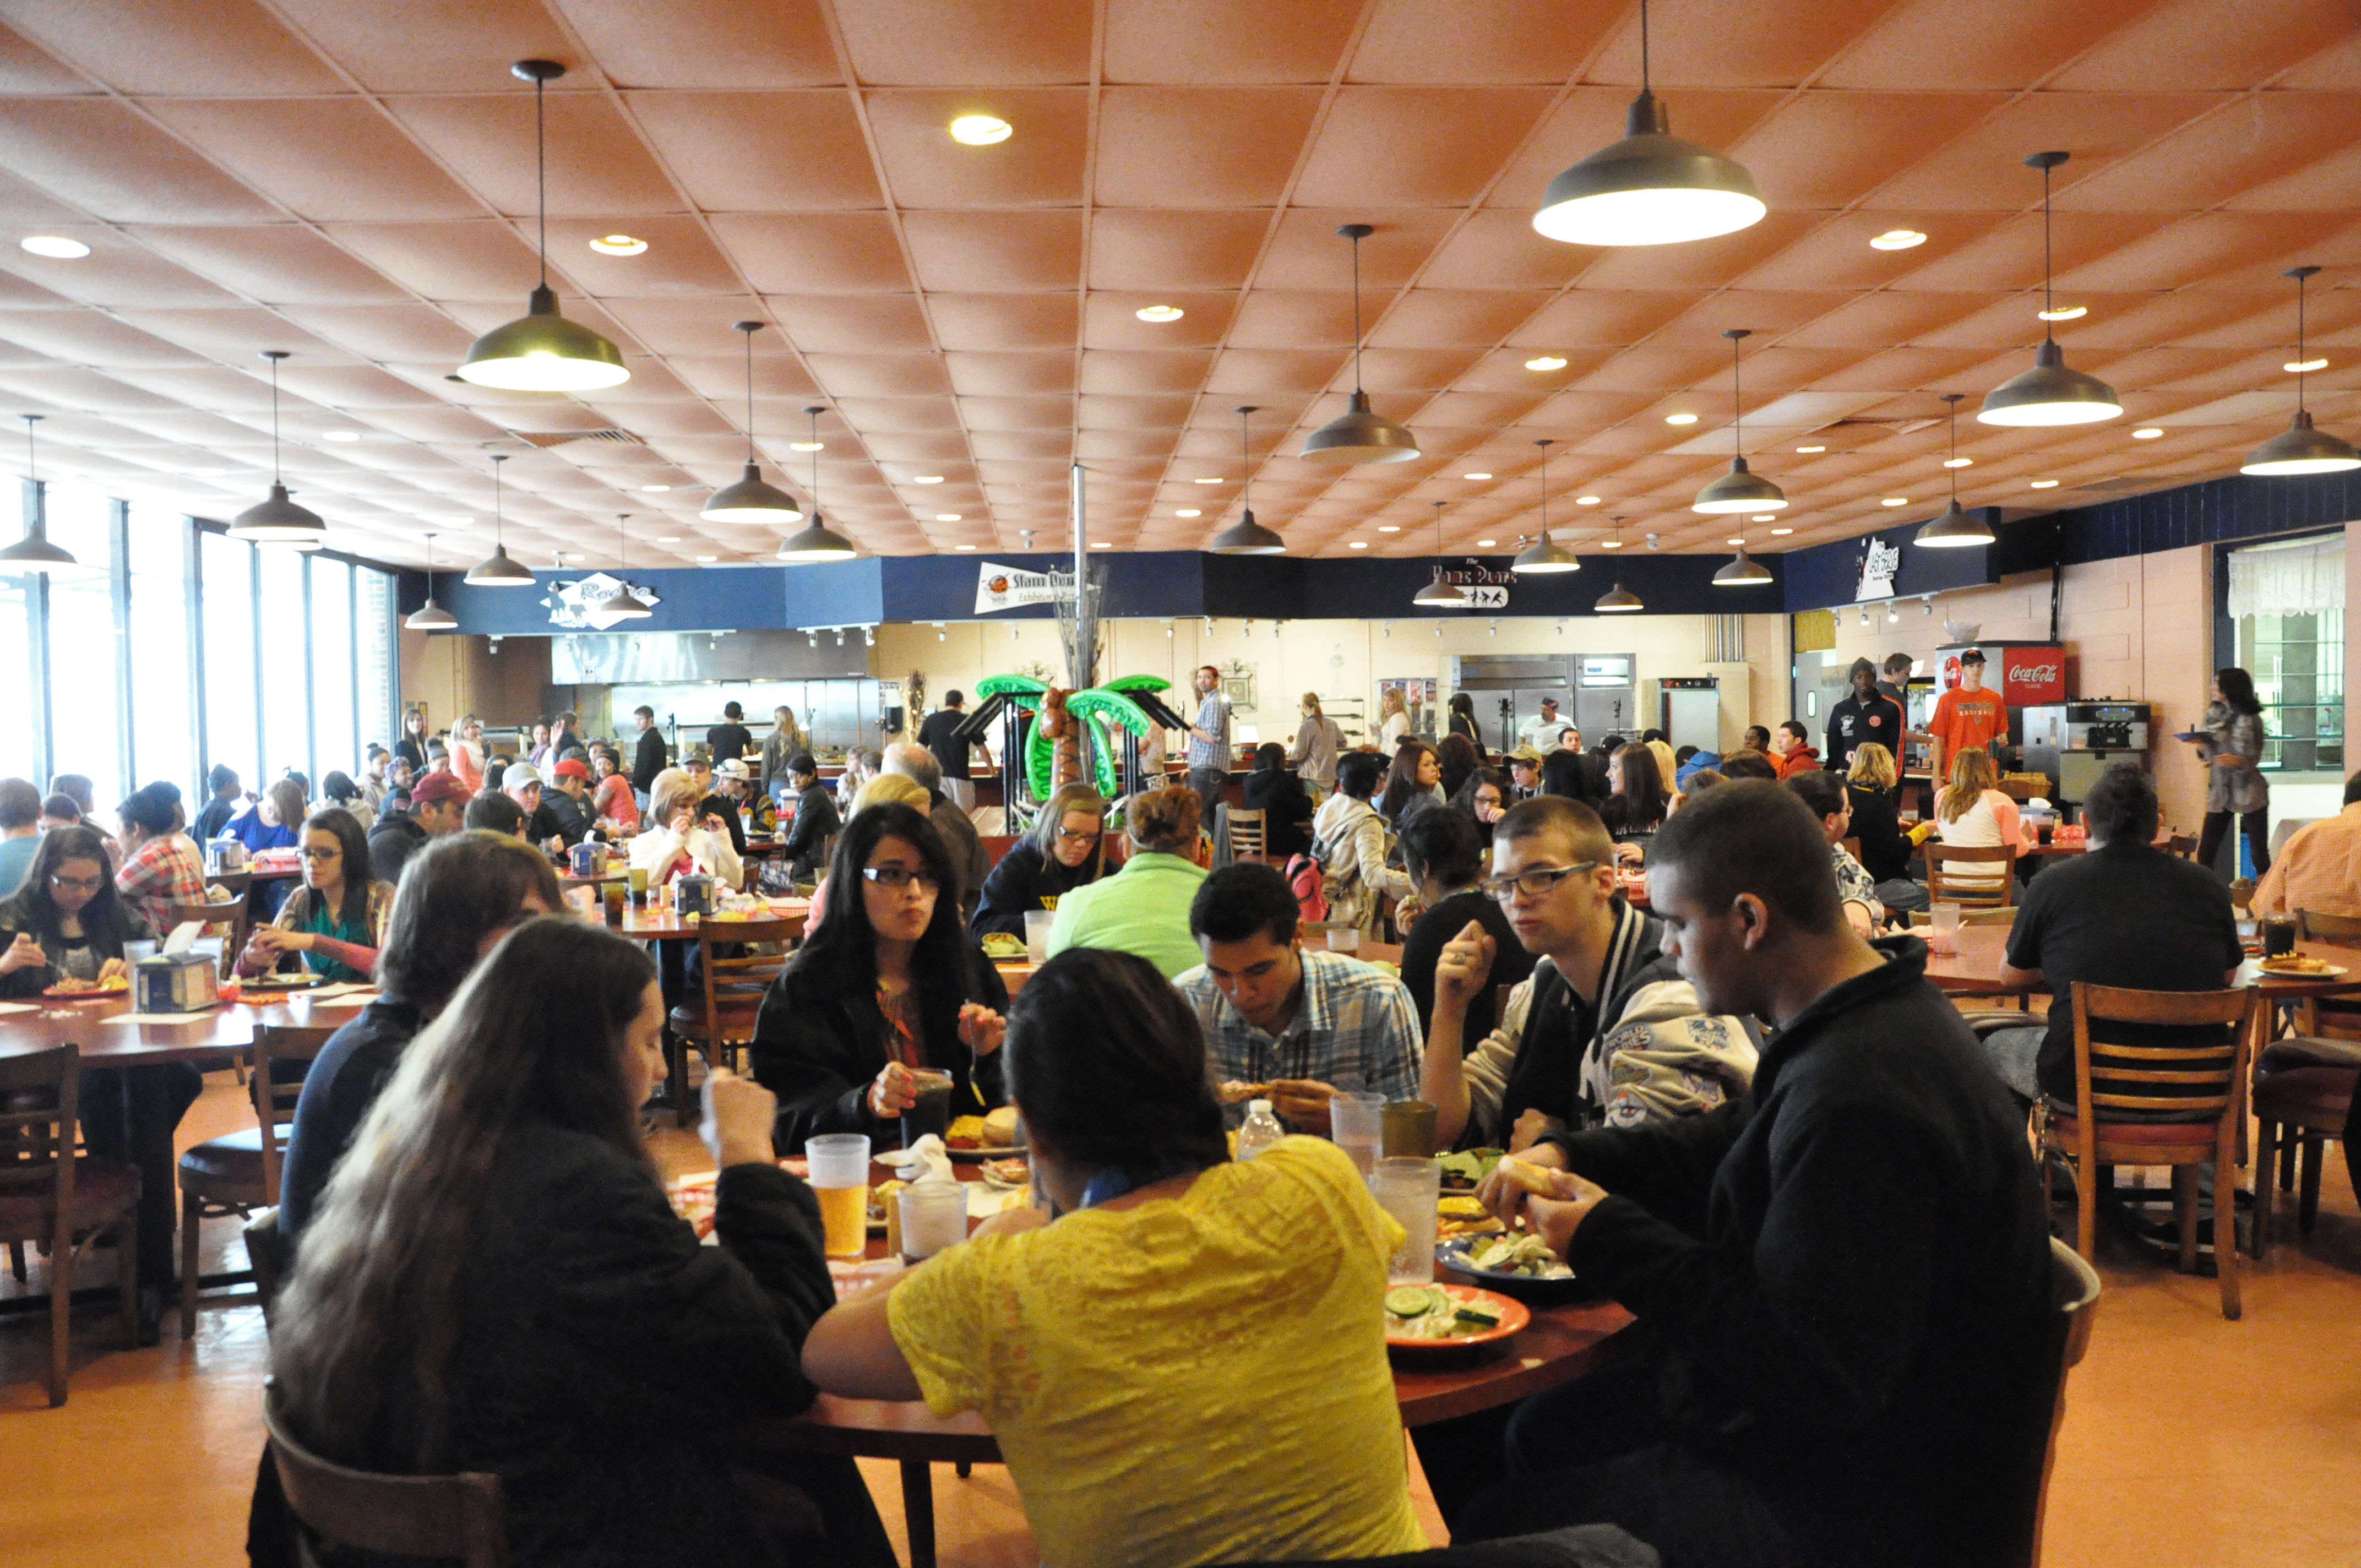 students visiting campus for senior day were treated to lunch in the campus cafeteria